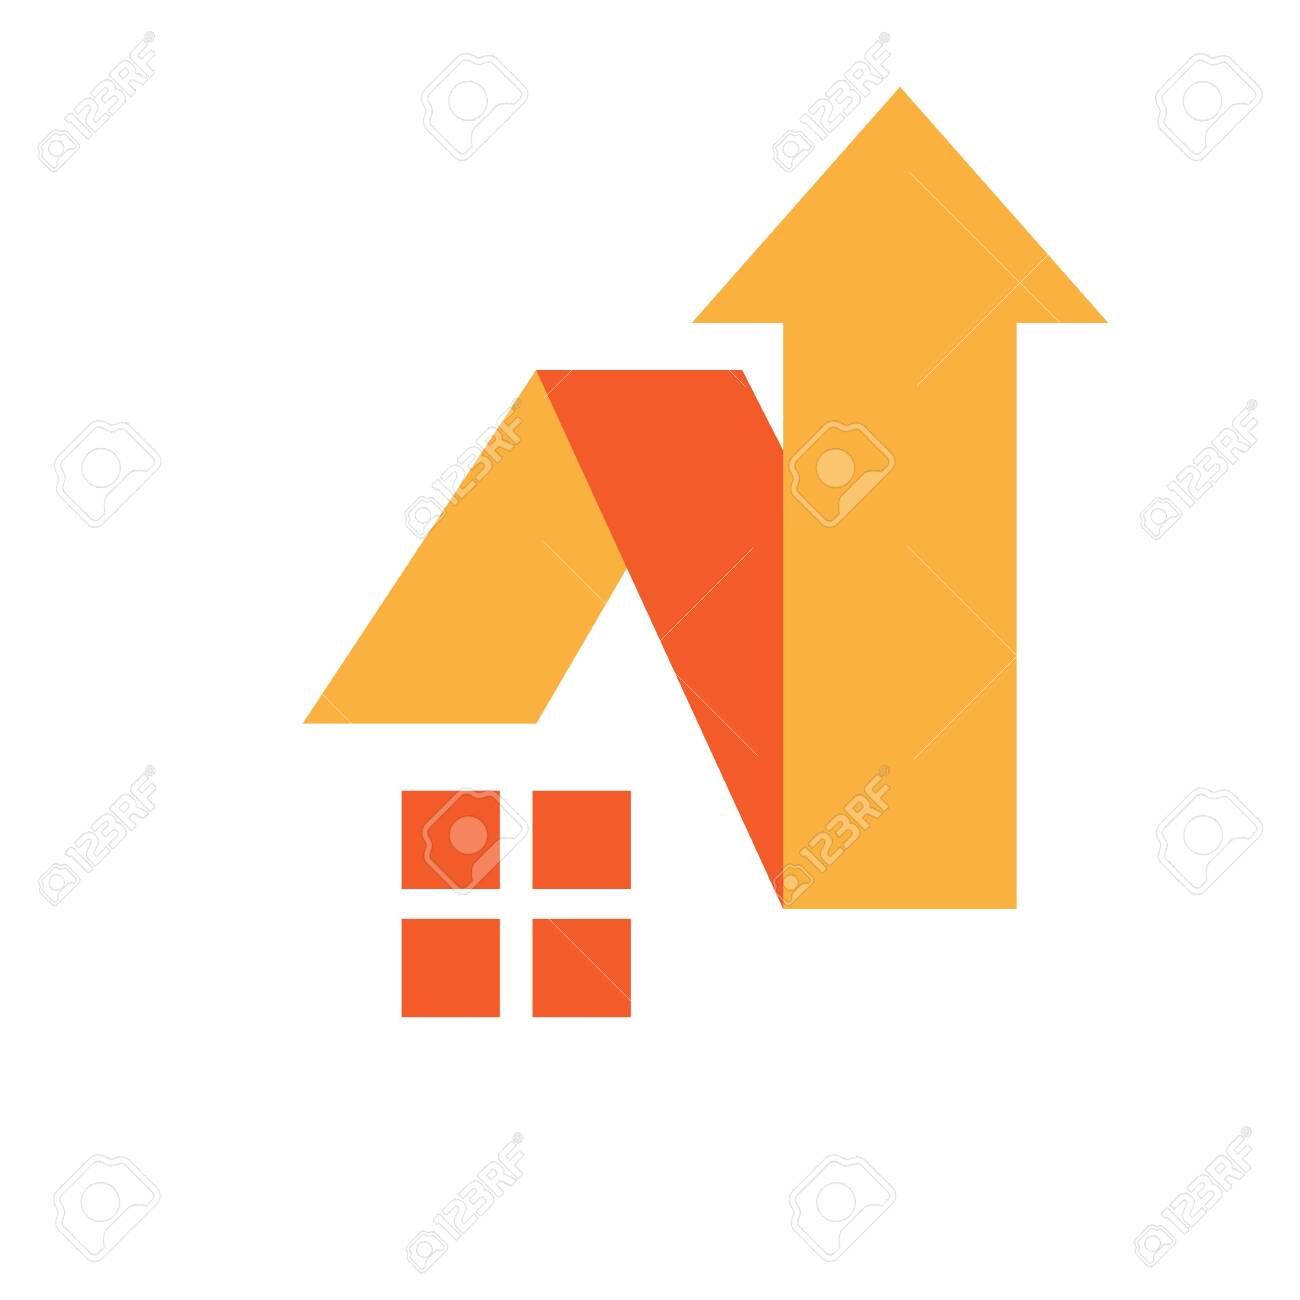 House And Roof Sign With Up Arrow Symbol Home Improvement Logo Royalty Free Cliparts Vectors And Stock Illustration Image 141591091